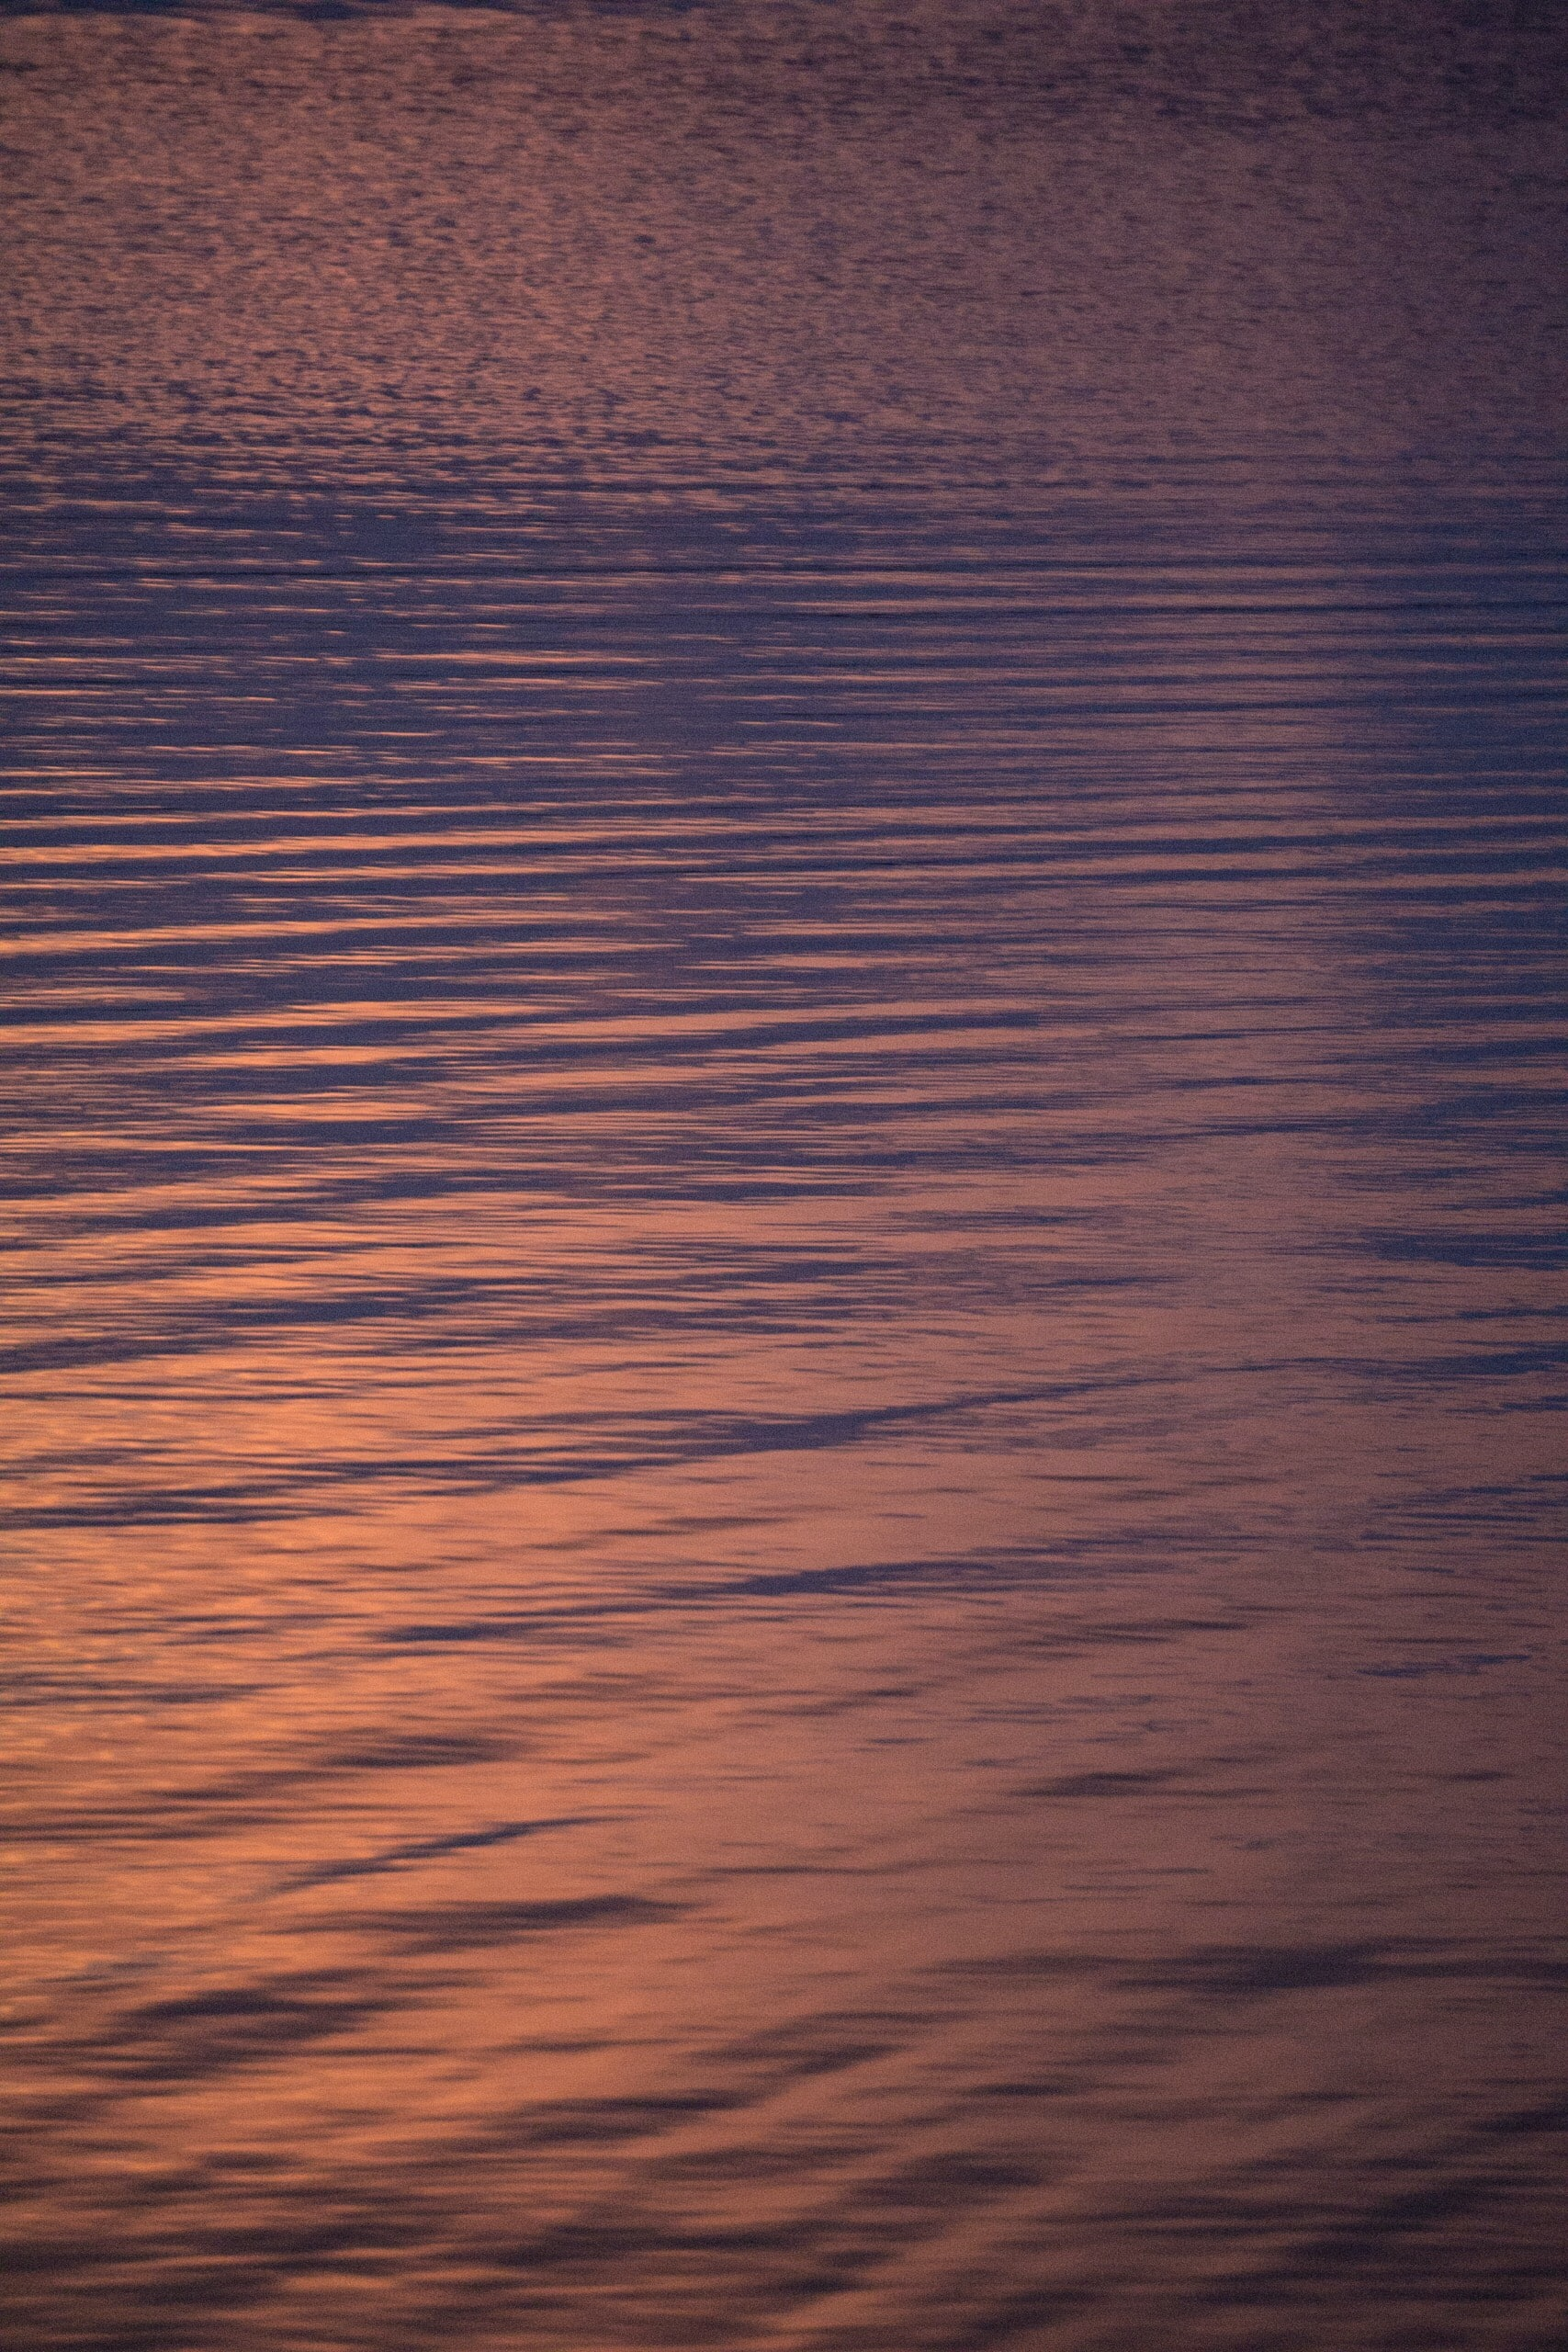 body of water at golden hour